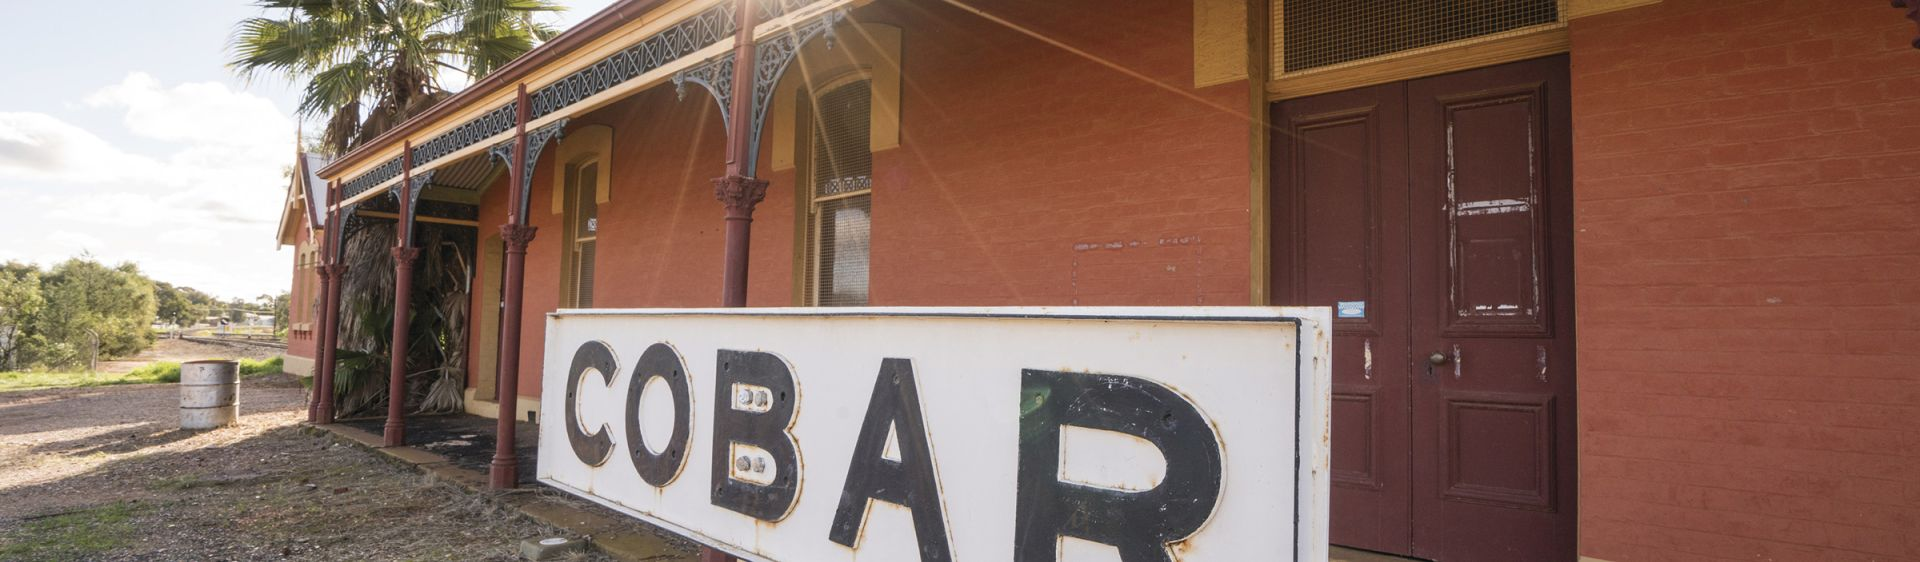 The historic Cobar Railway Station located at the end of a branch line to serve the mining activity in Cobar Area